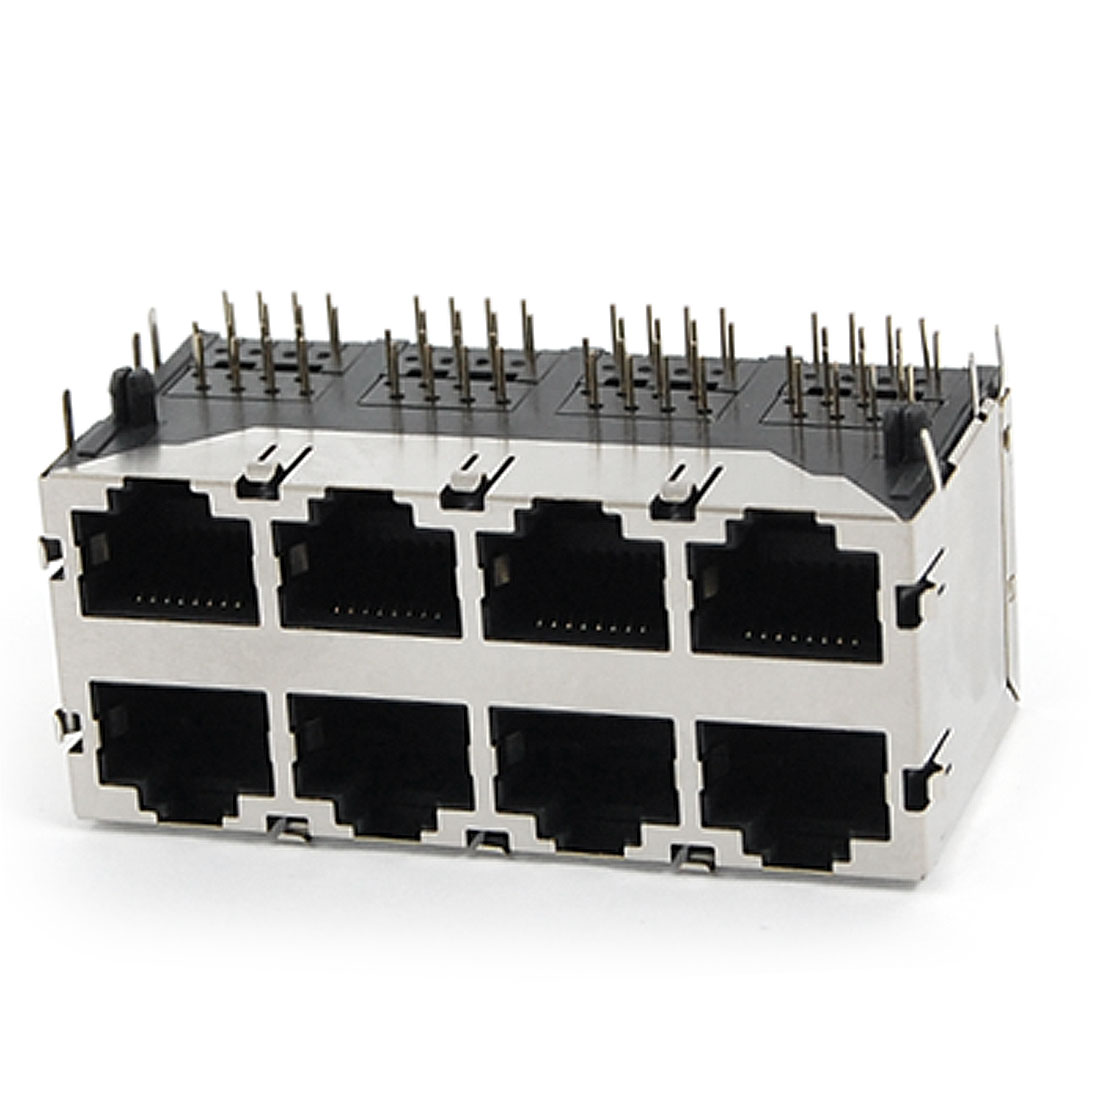 59-8P 2x4 Ports RJ45 Modular PCB Jack Network Computer Connector